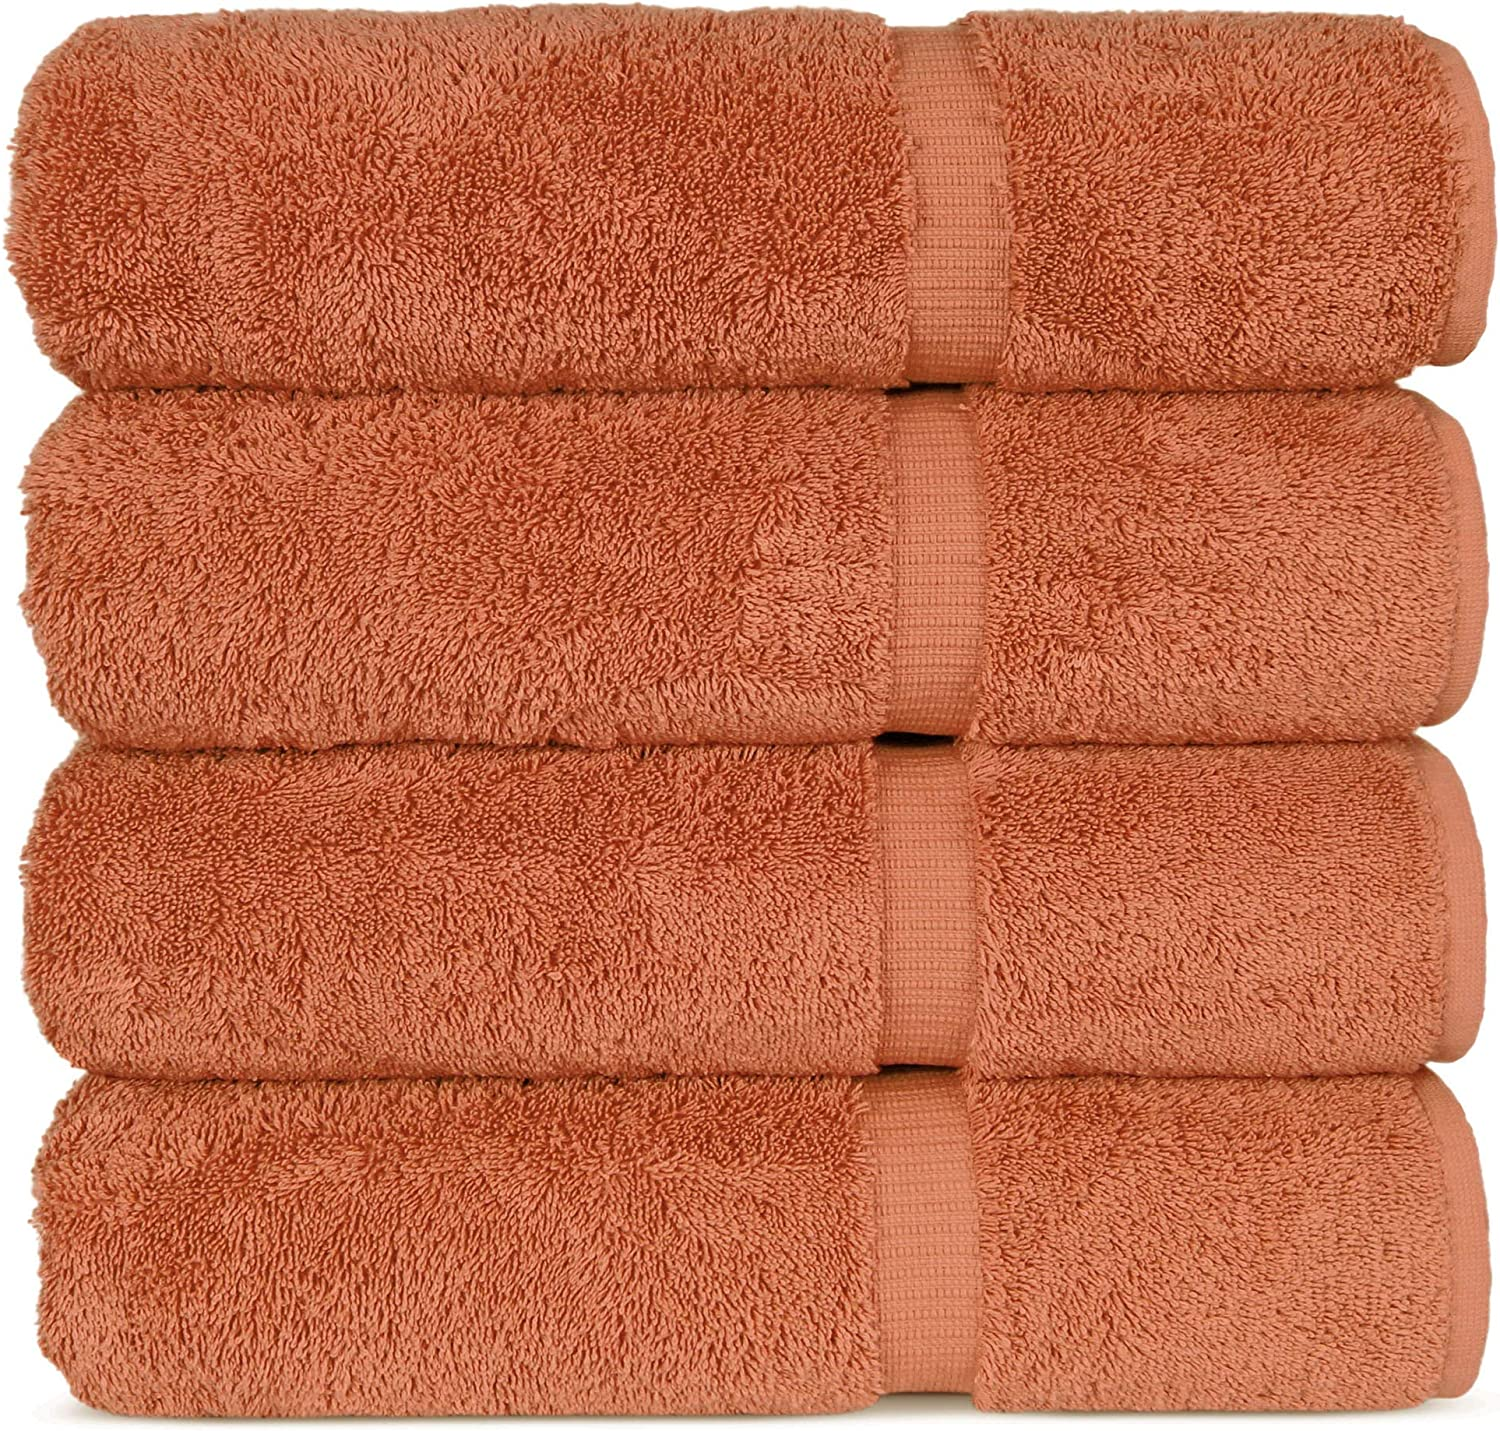 "Luxury Hotel & Spa 100% Cotton Premium Turkish Bath Towels, 27"" x 54'' (Set of 4, Coral)"